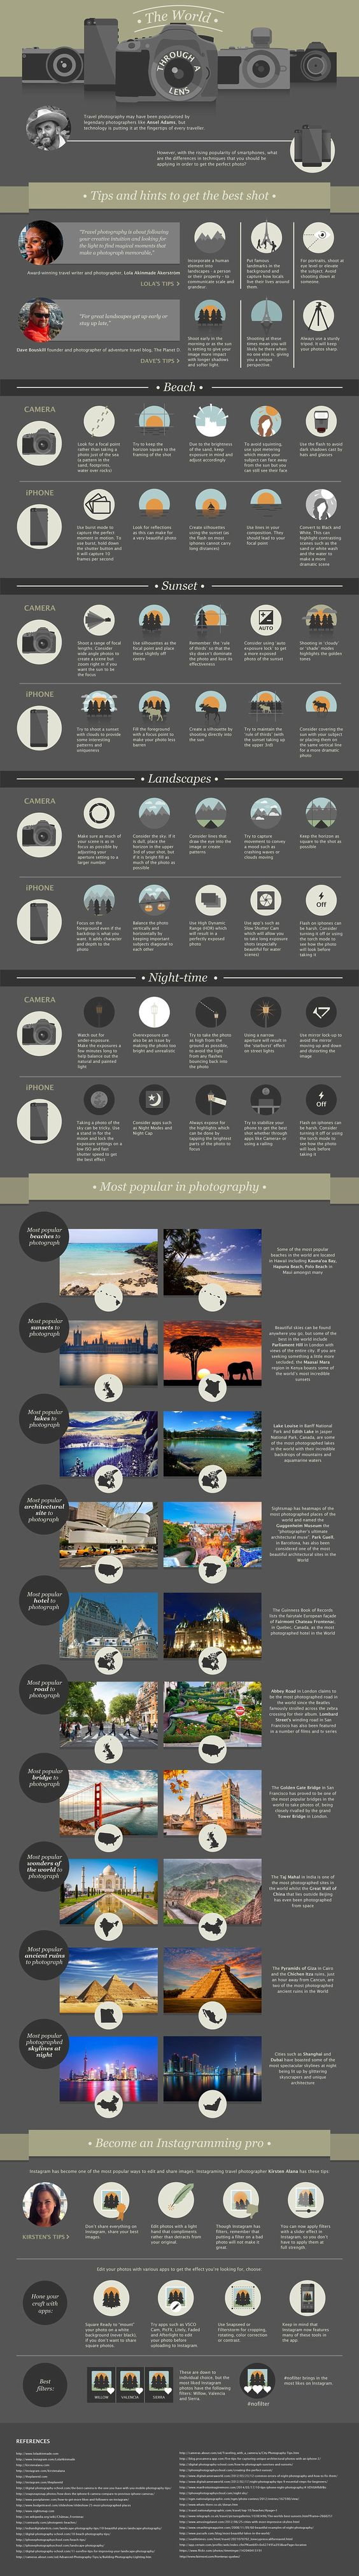 Fairmont Hotels' infographic guide to shooting holiday photos plus how to Instagram like a pro | Daily Mail Online...X